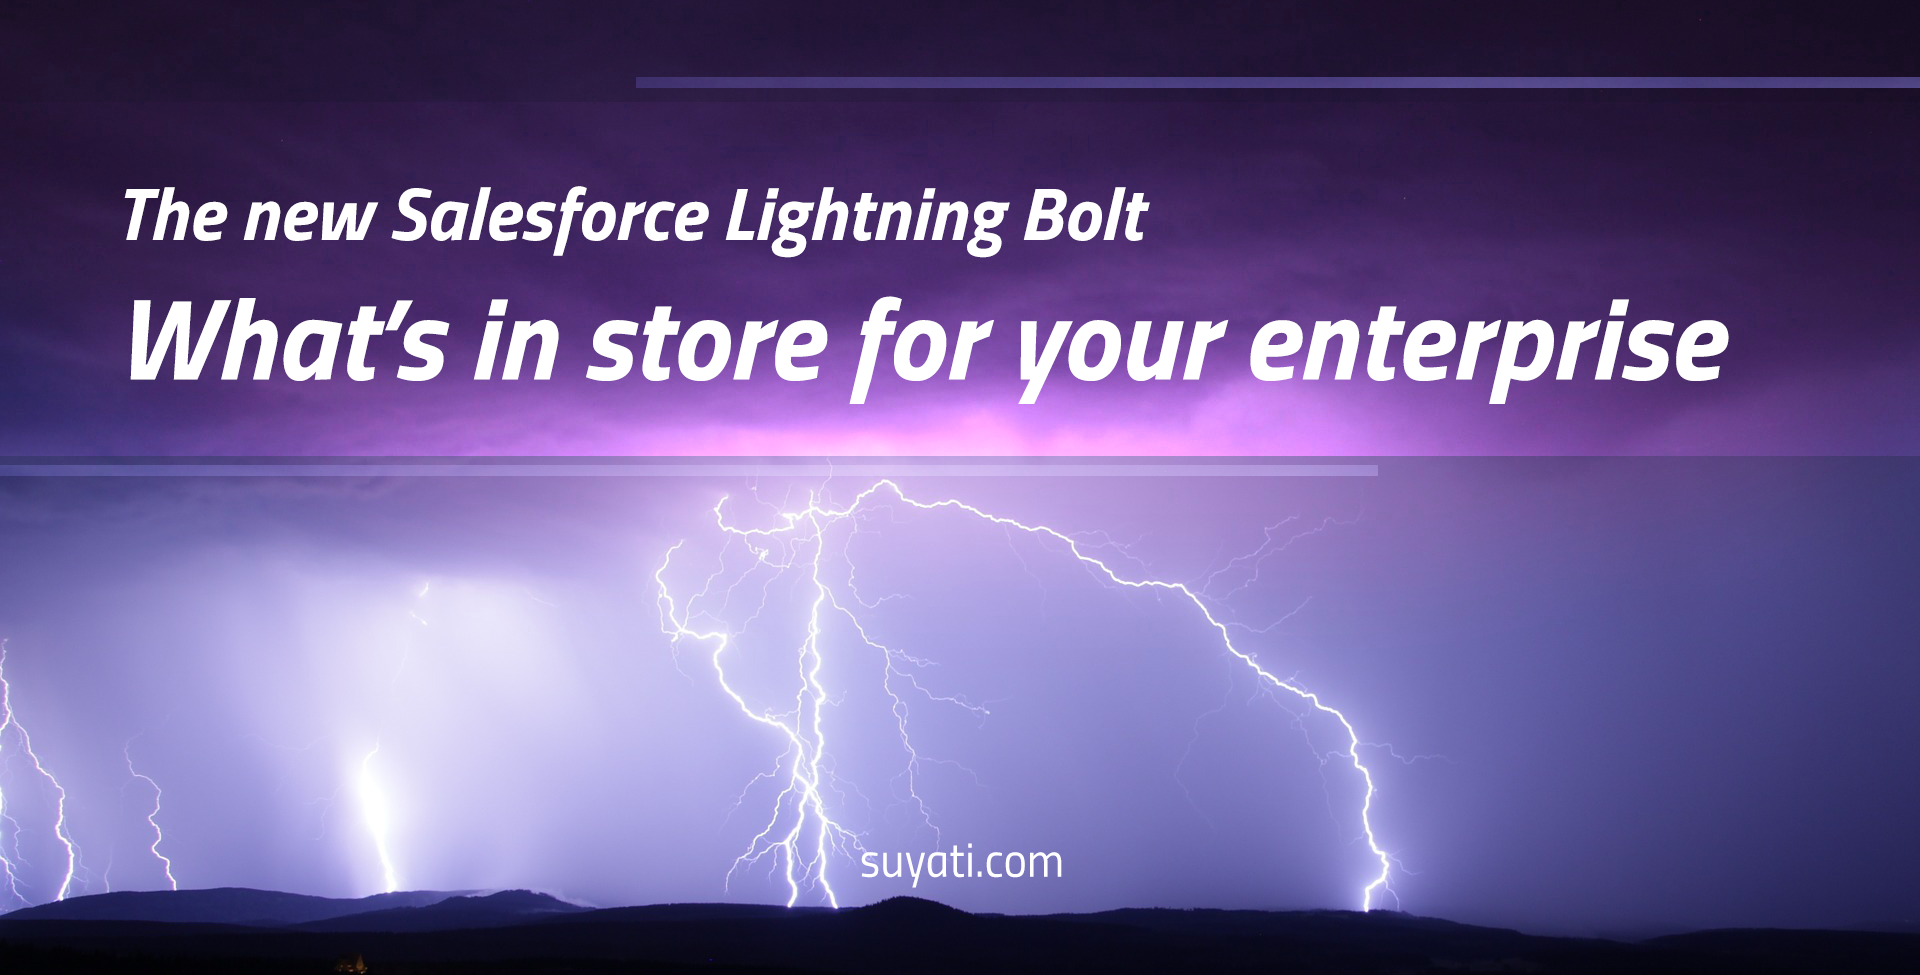 how-the-new-salesforce-lightning-bolt-helps-your-business